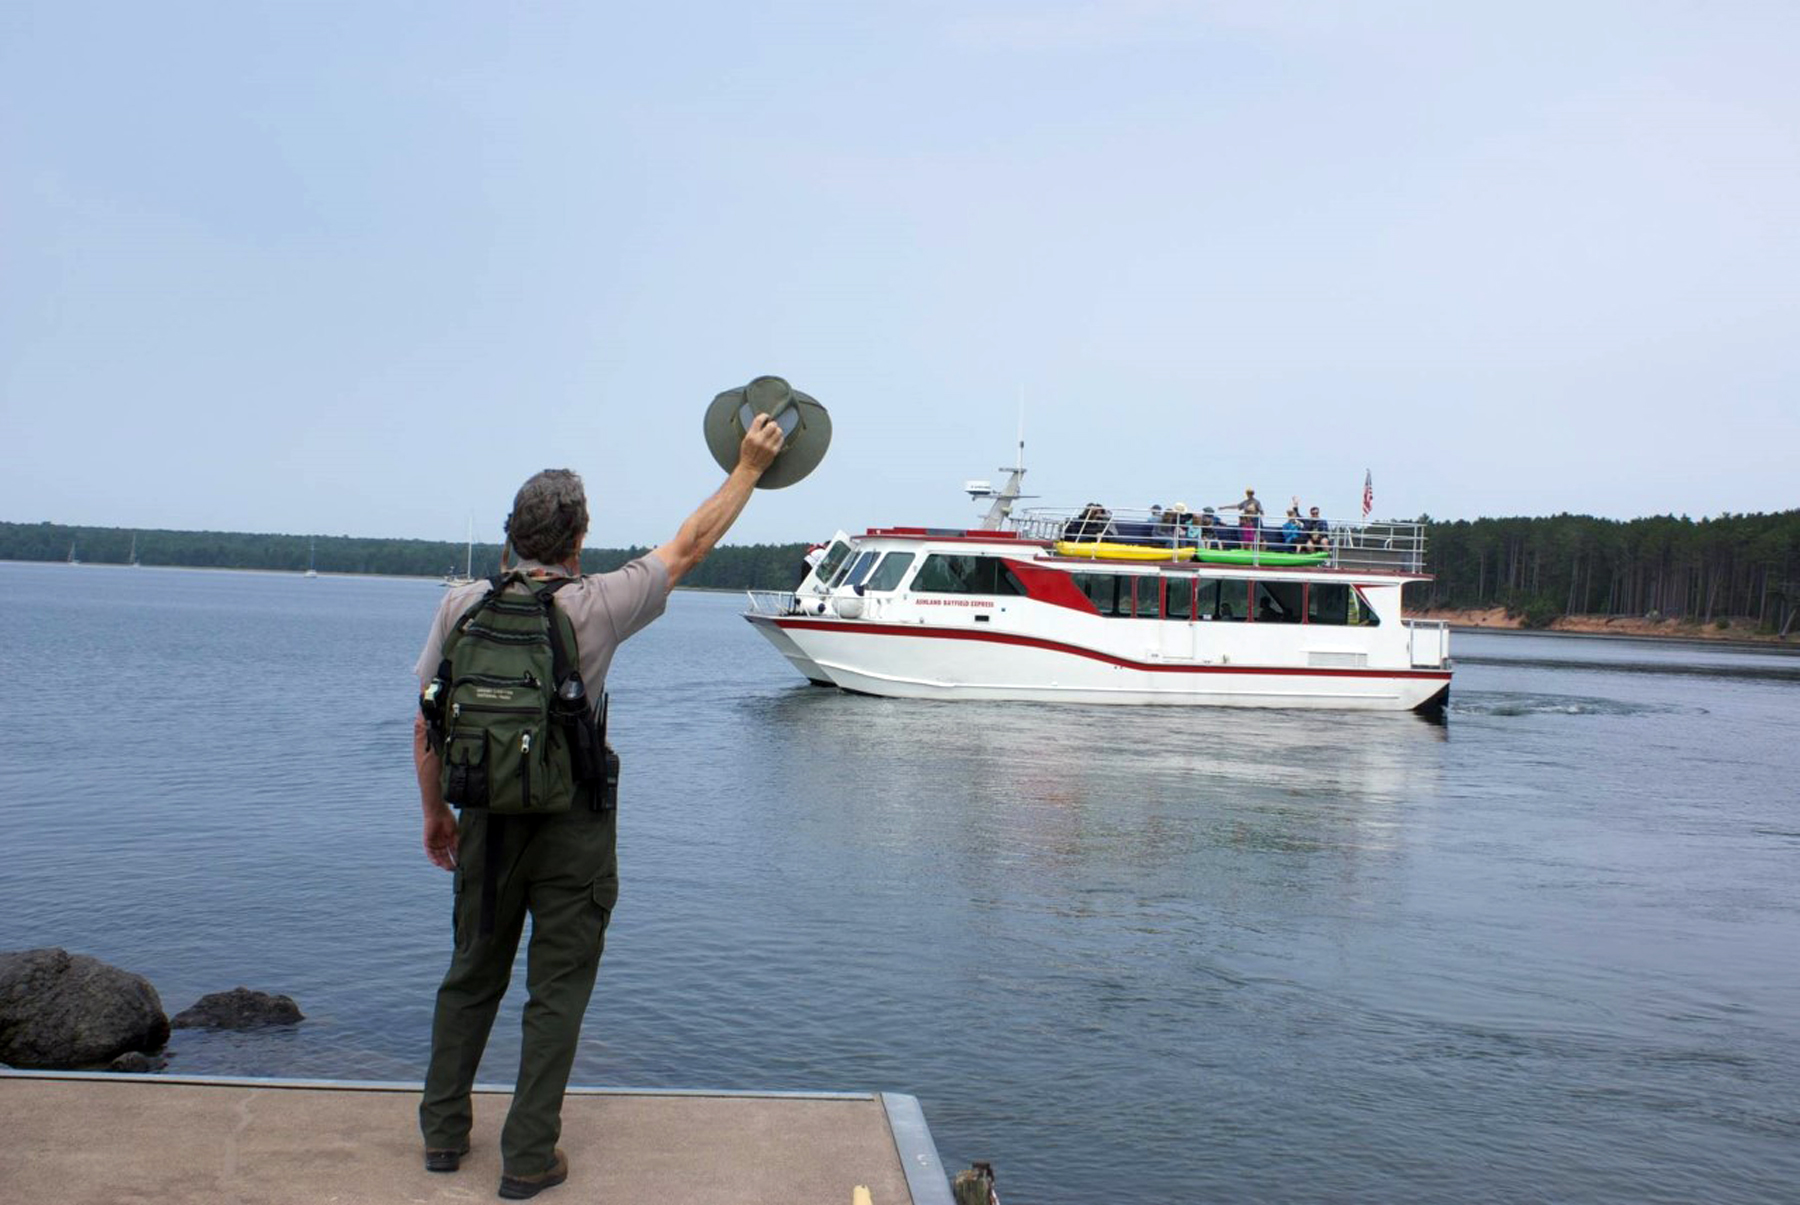 Stu waves goodbye to the cruise boat departing from Stockton Island